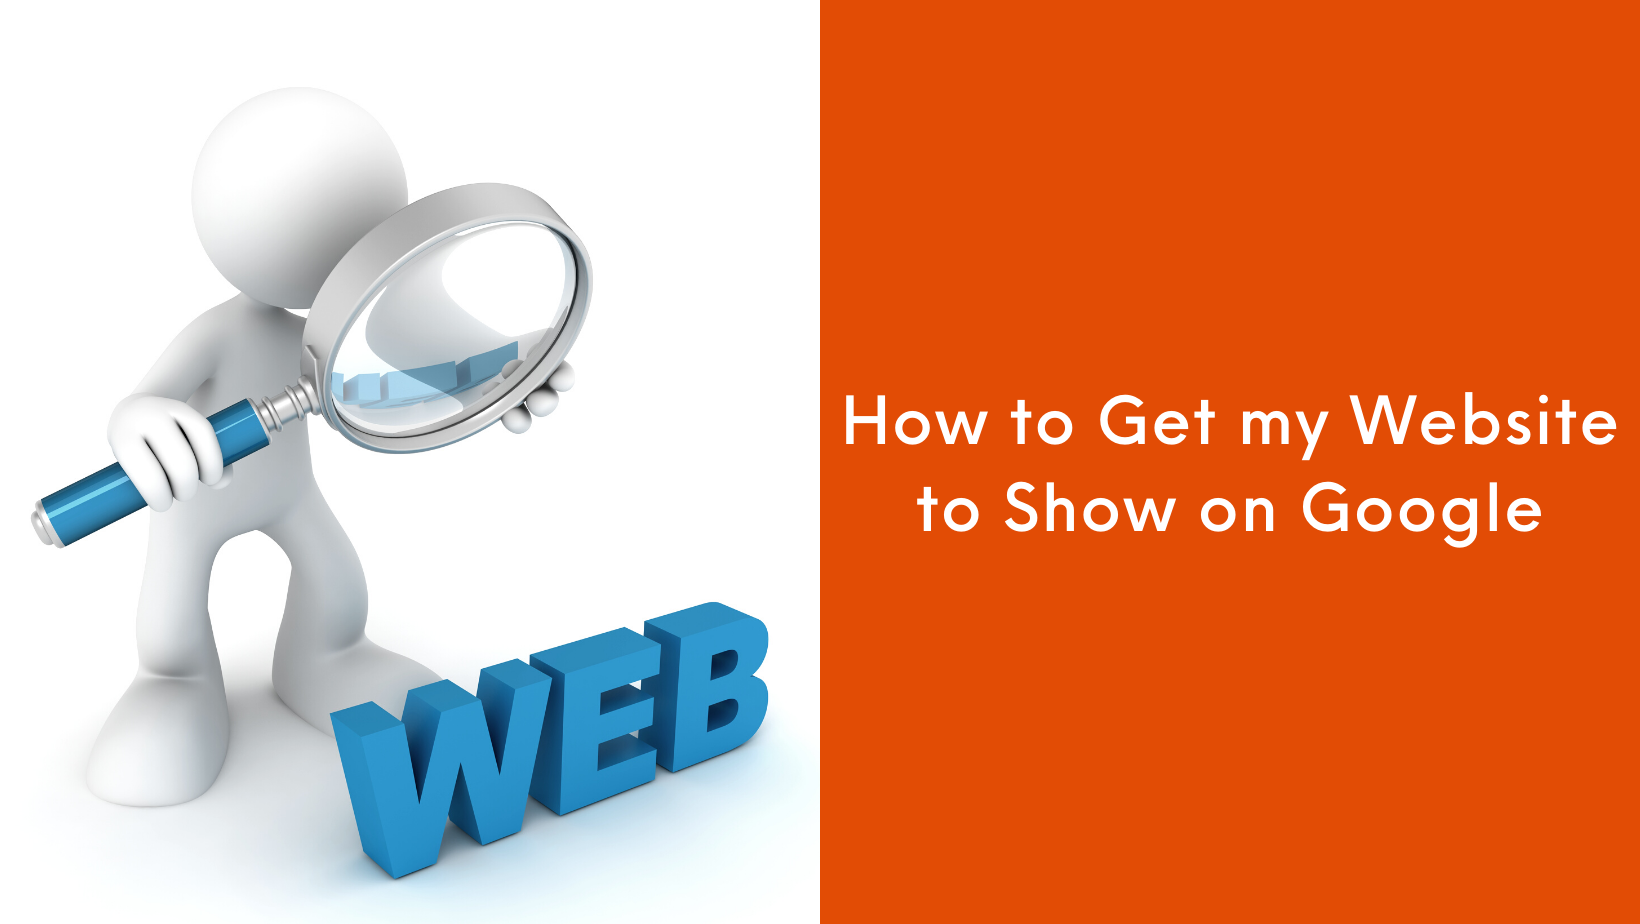 How to Get my Website to Show on Google